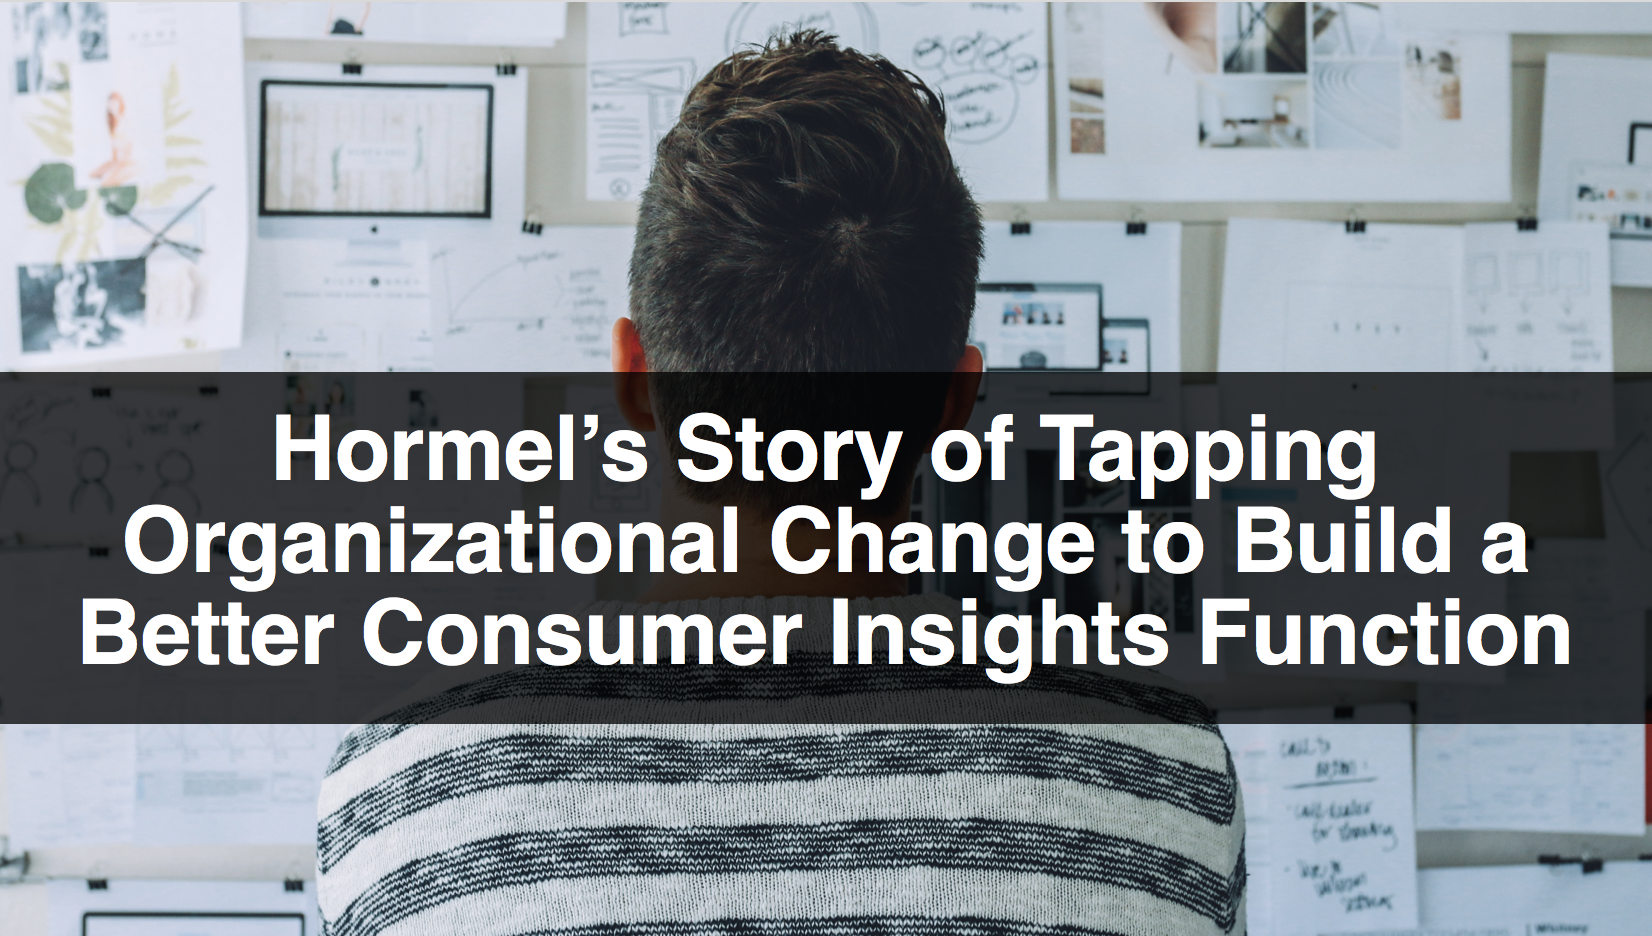 Hormel's Story of Tapping Organizational Change to Build a Better Consumer Insights Function